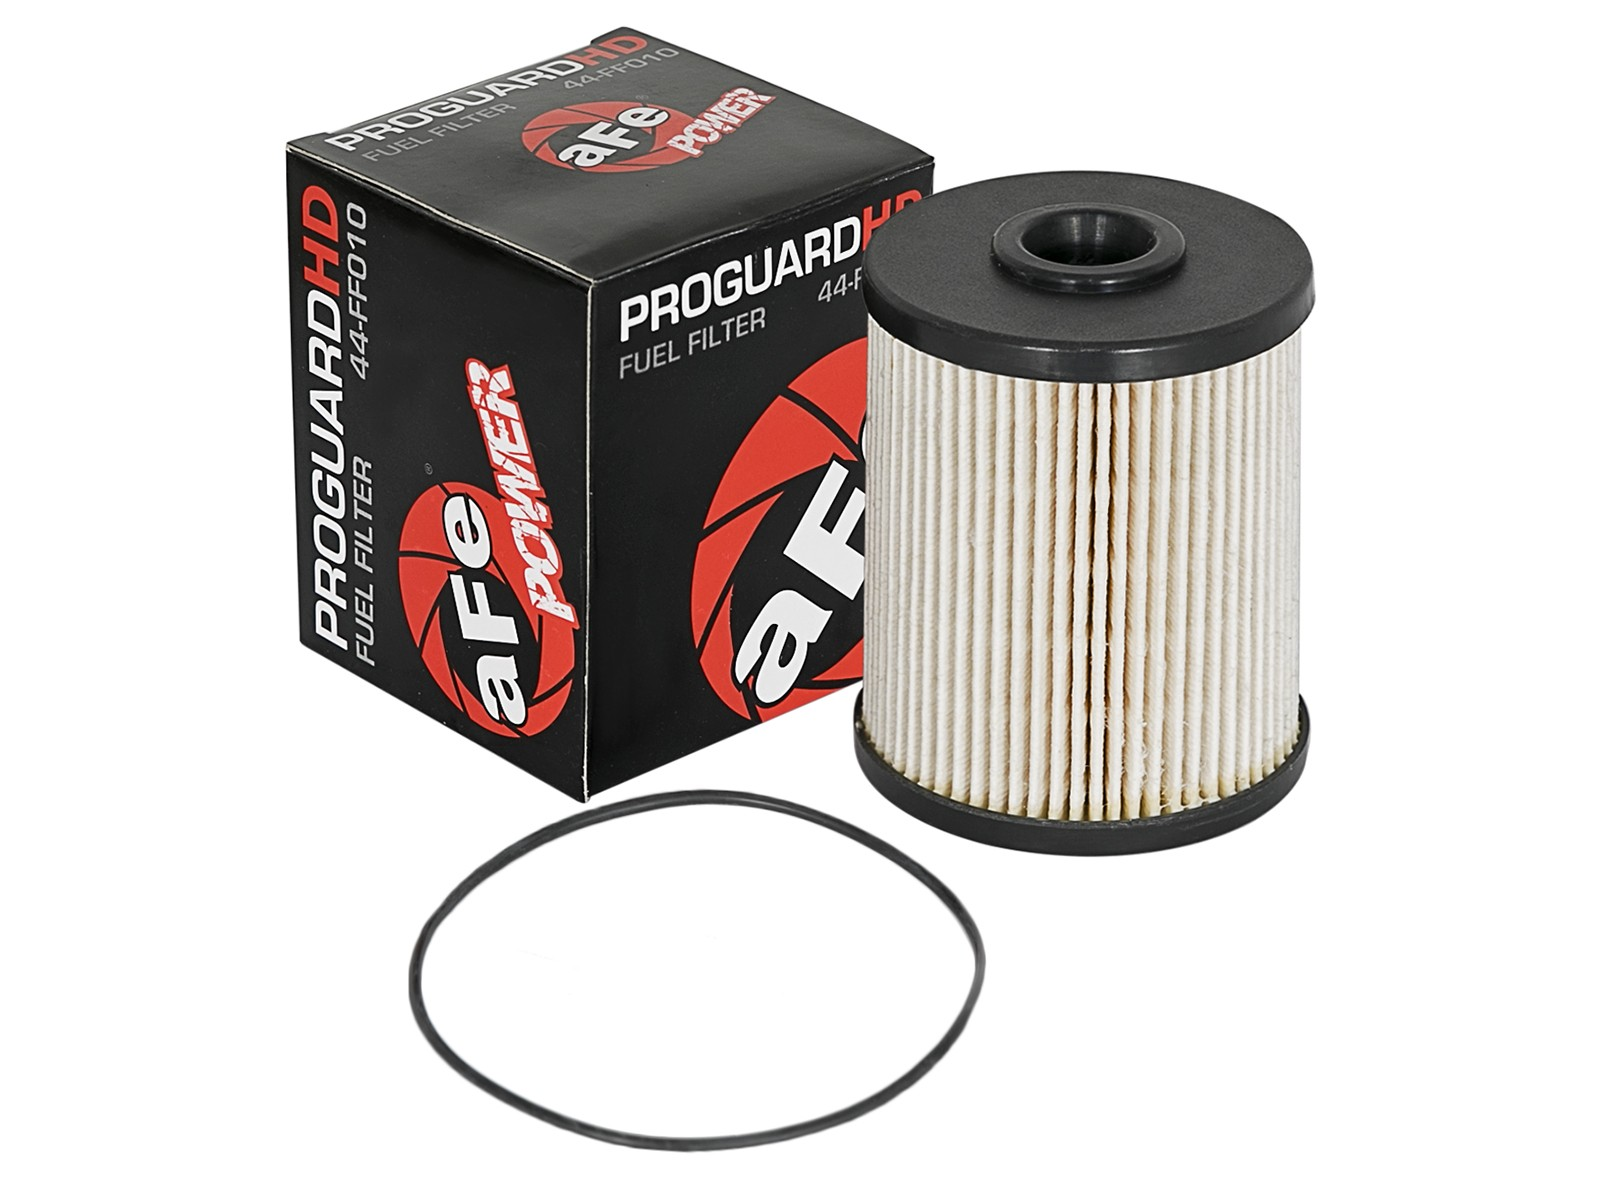 2005 Dodge Magnum Fuel Filter Location 2004 1600x1200